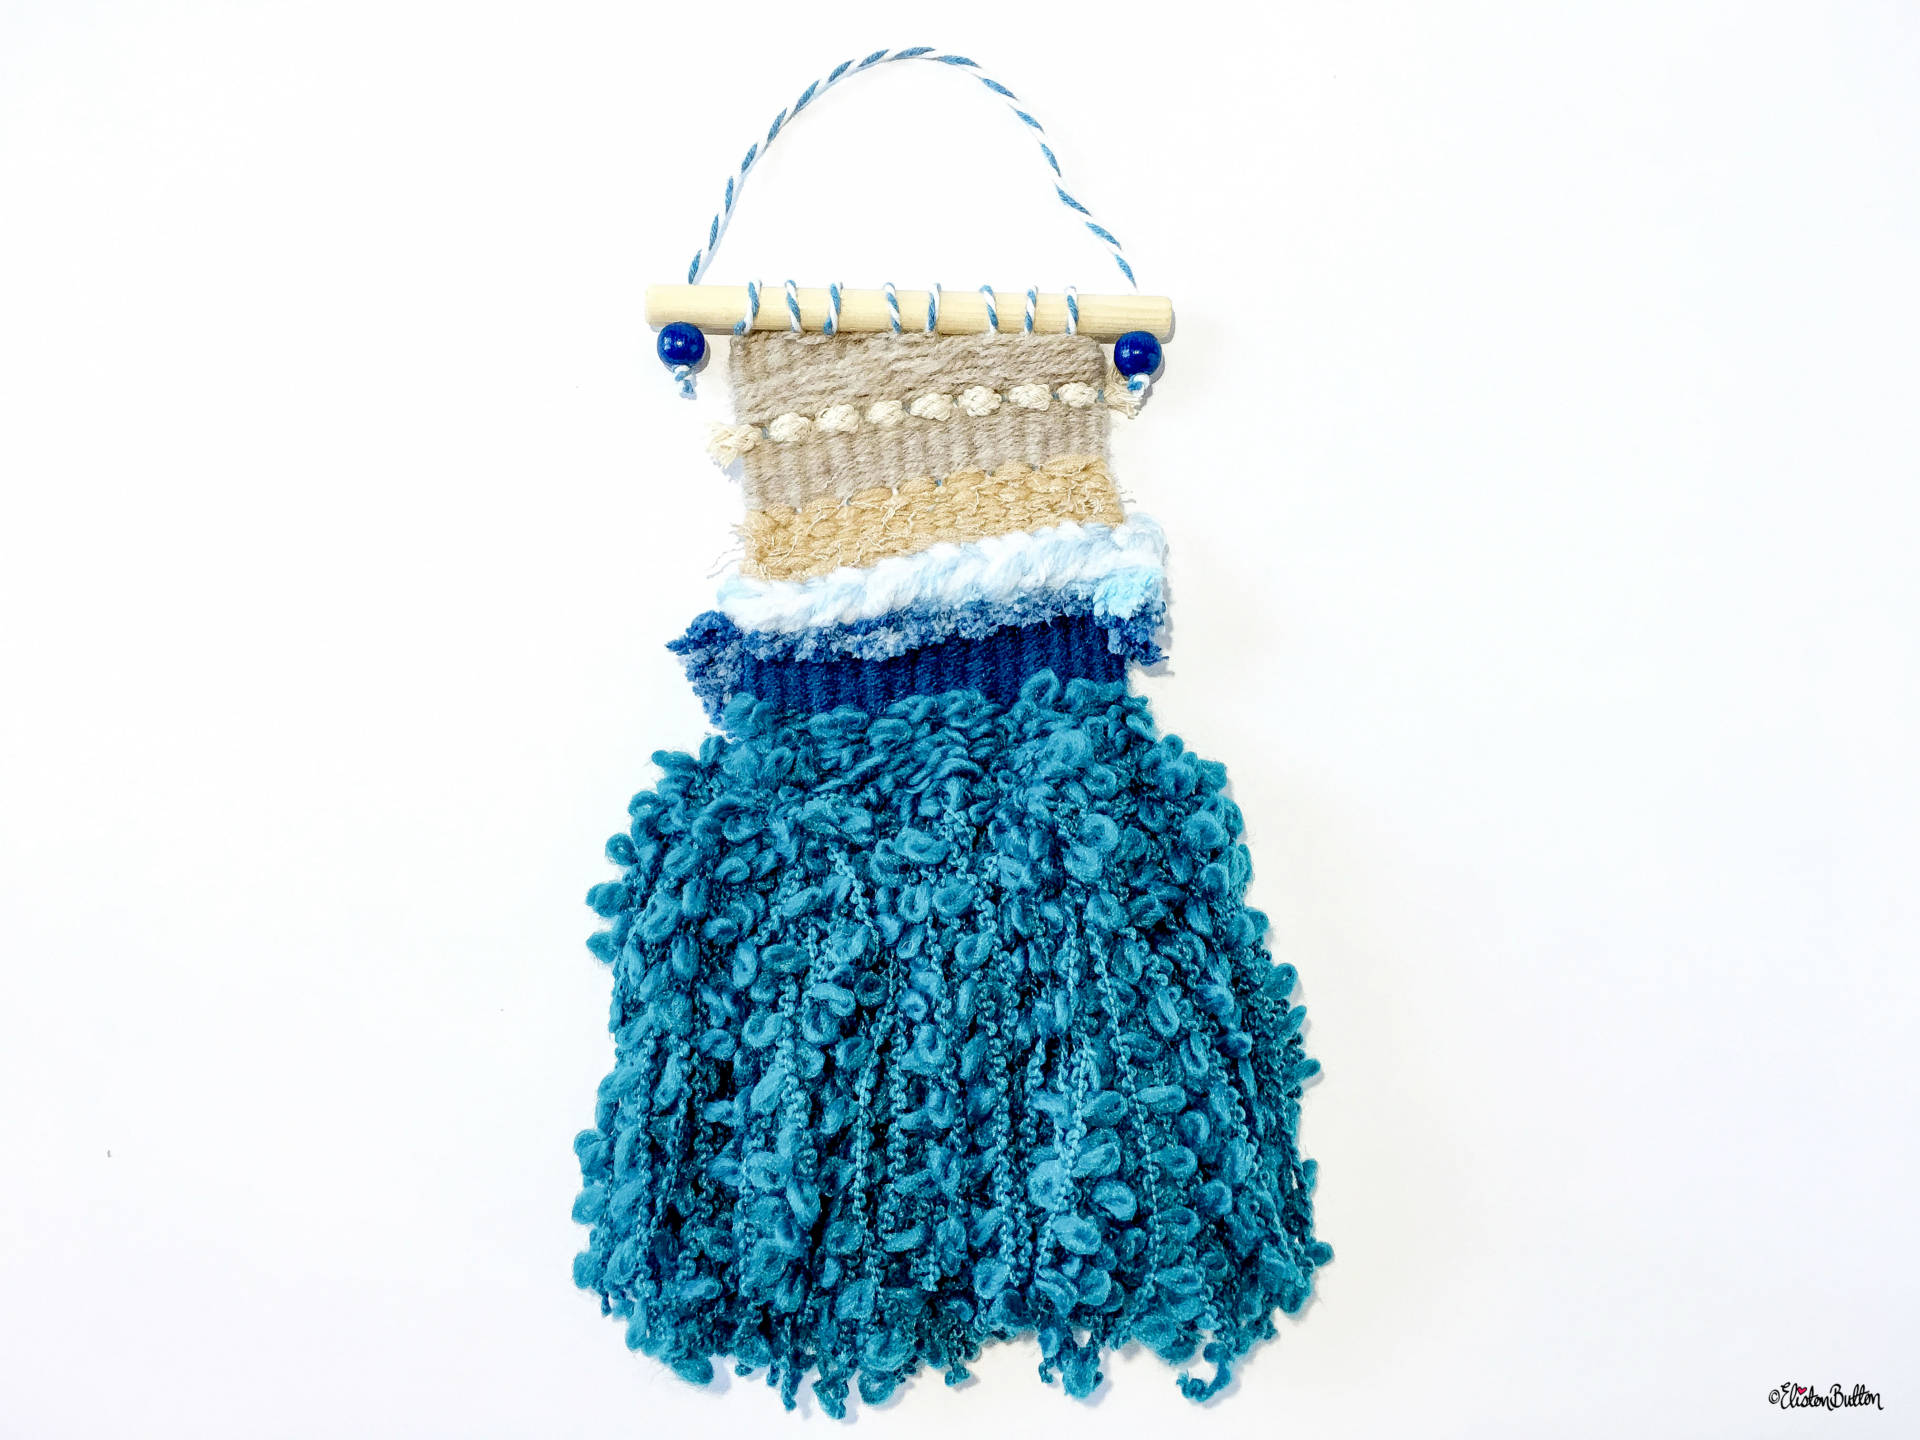 Beach Theme Mini Woven Wall Hanging with Teal Seaweed Tassels by Eliston Button On Etsy - Create 30 - No. 20, 21 & 22 - Mini Beach Woven Wall Hangings at www.elistonbutton.com - Eliston Button - That Crafty Kid – Art, Design, Craft & Adventure.